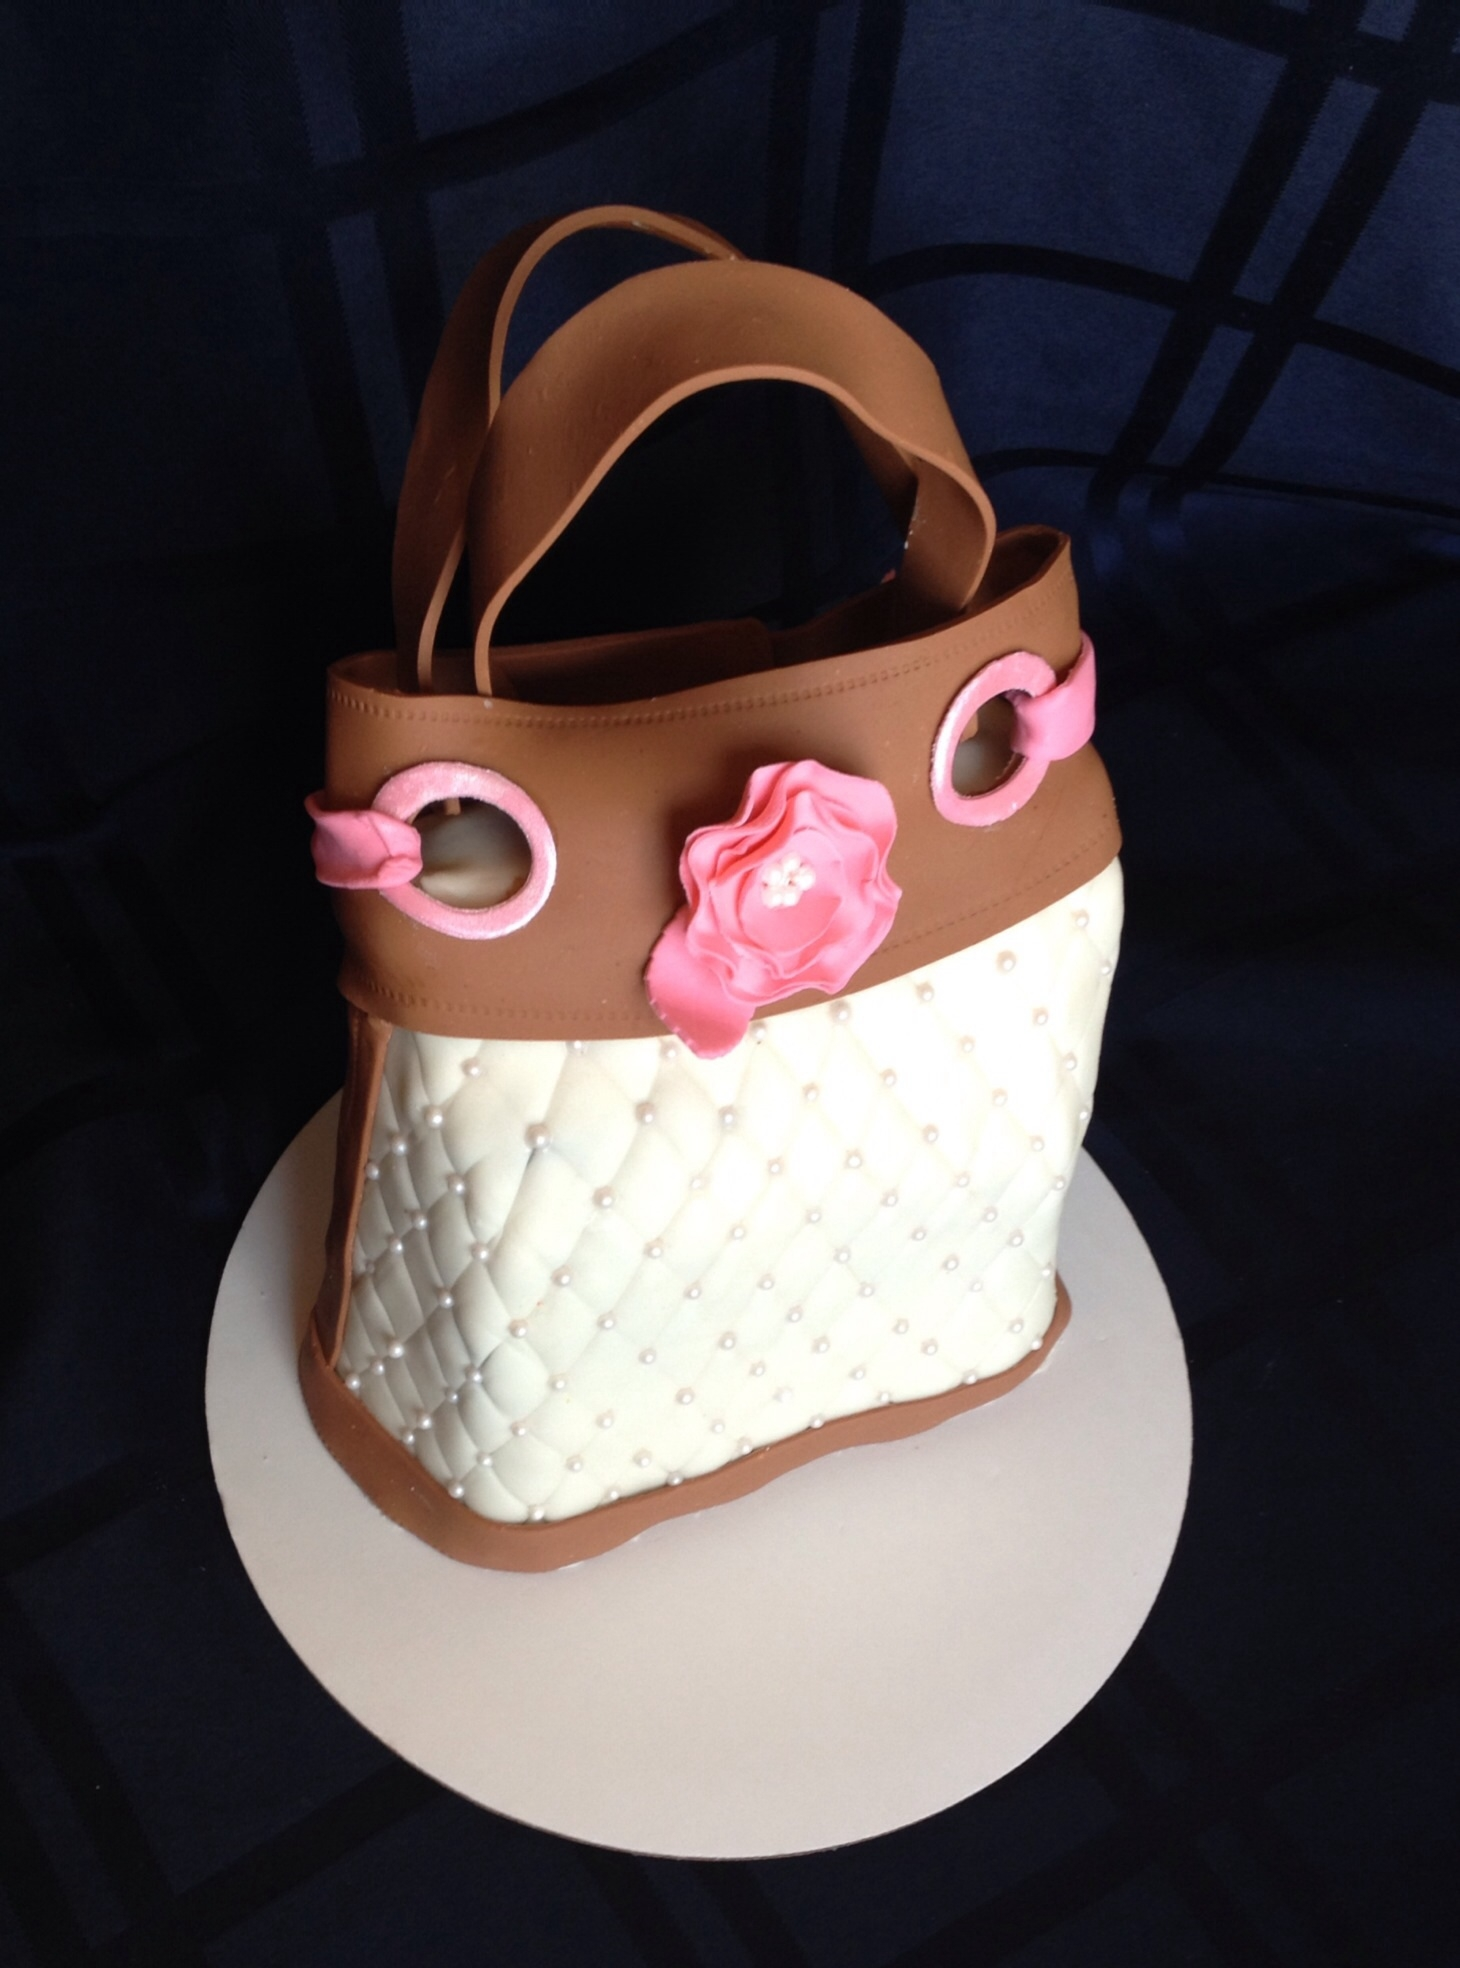 Purse Cake Not my original design but not sure who to give credit to. Photo was sent to me by client.